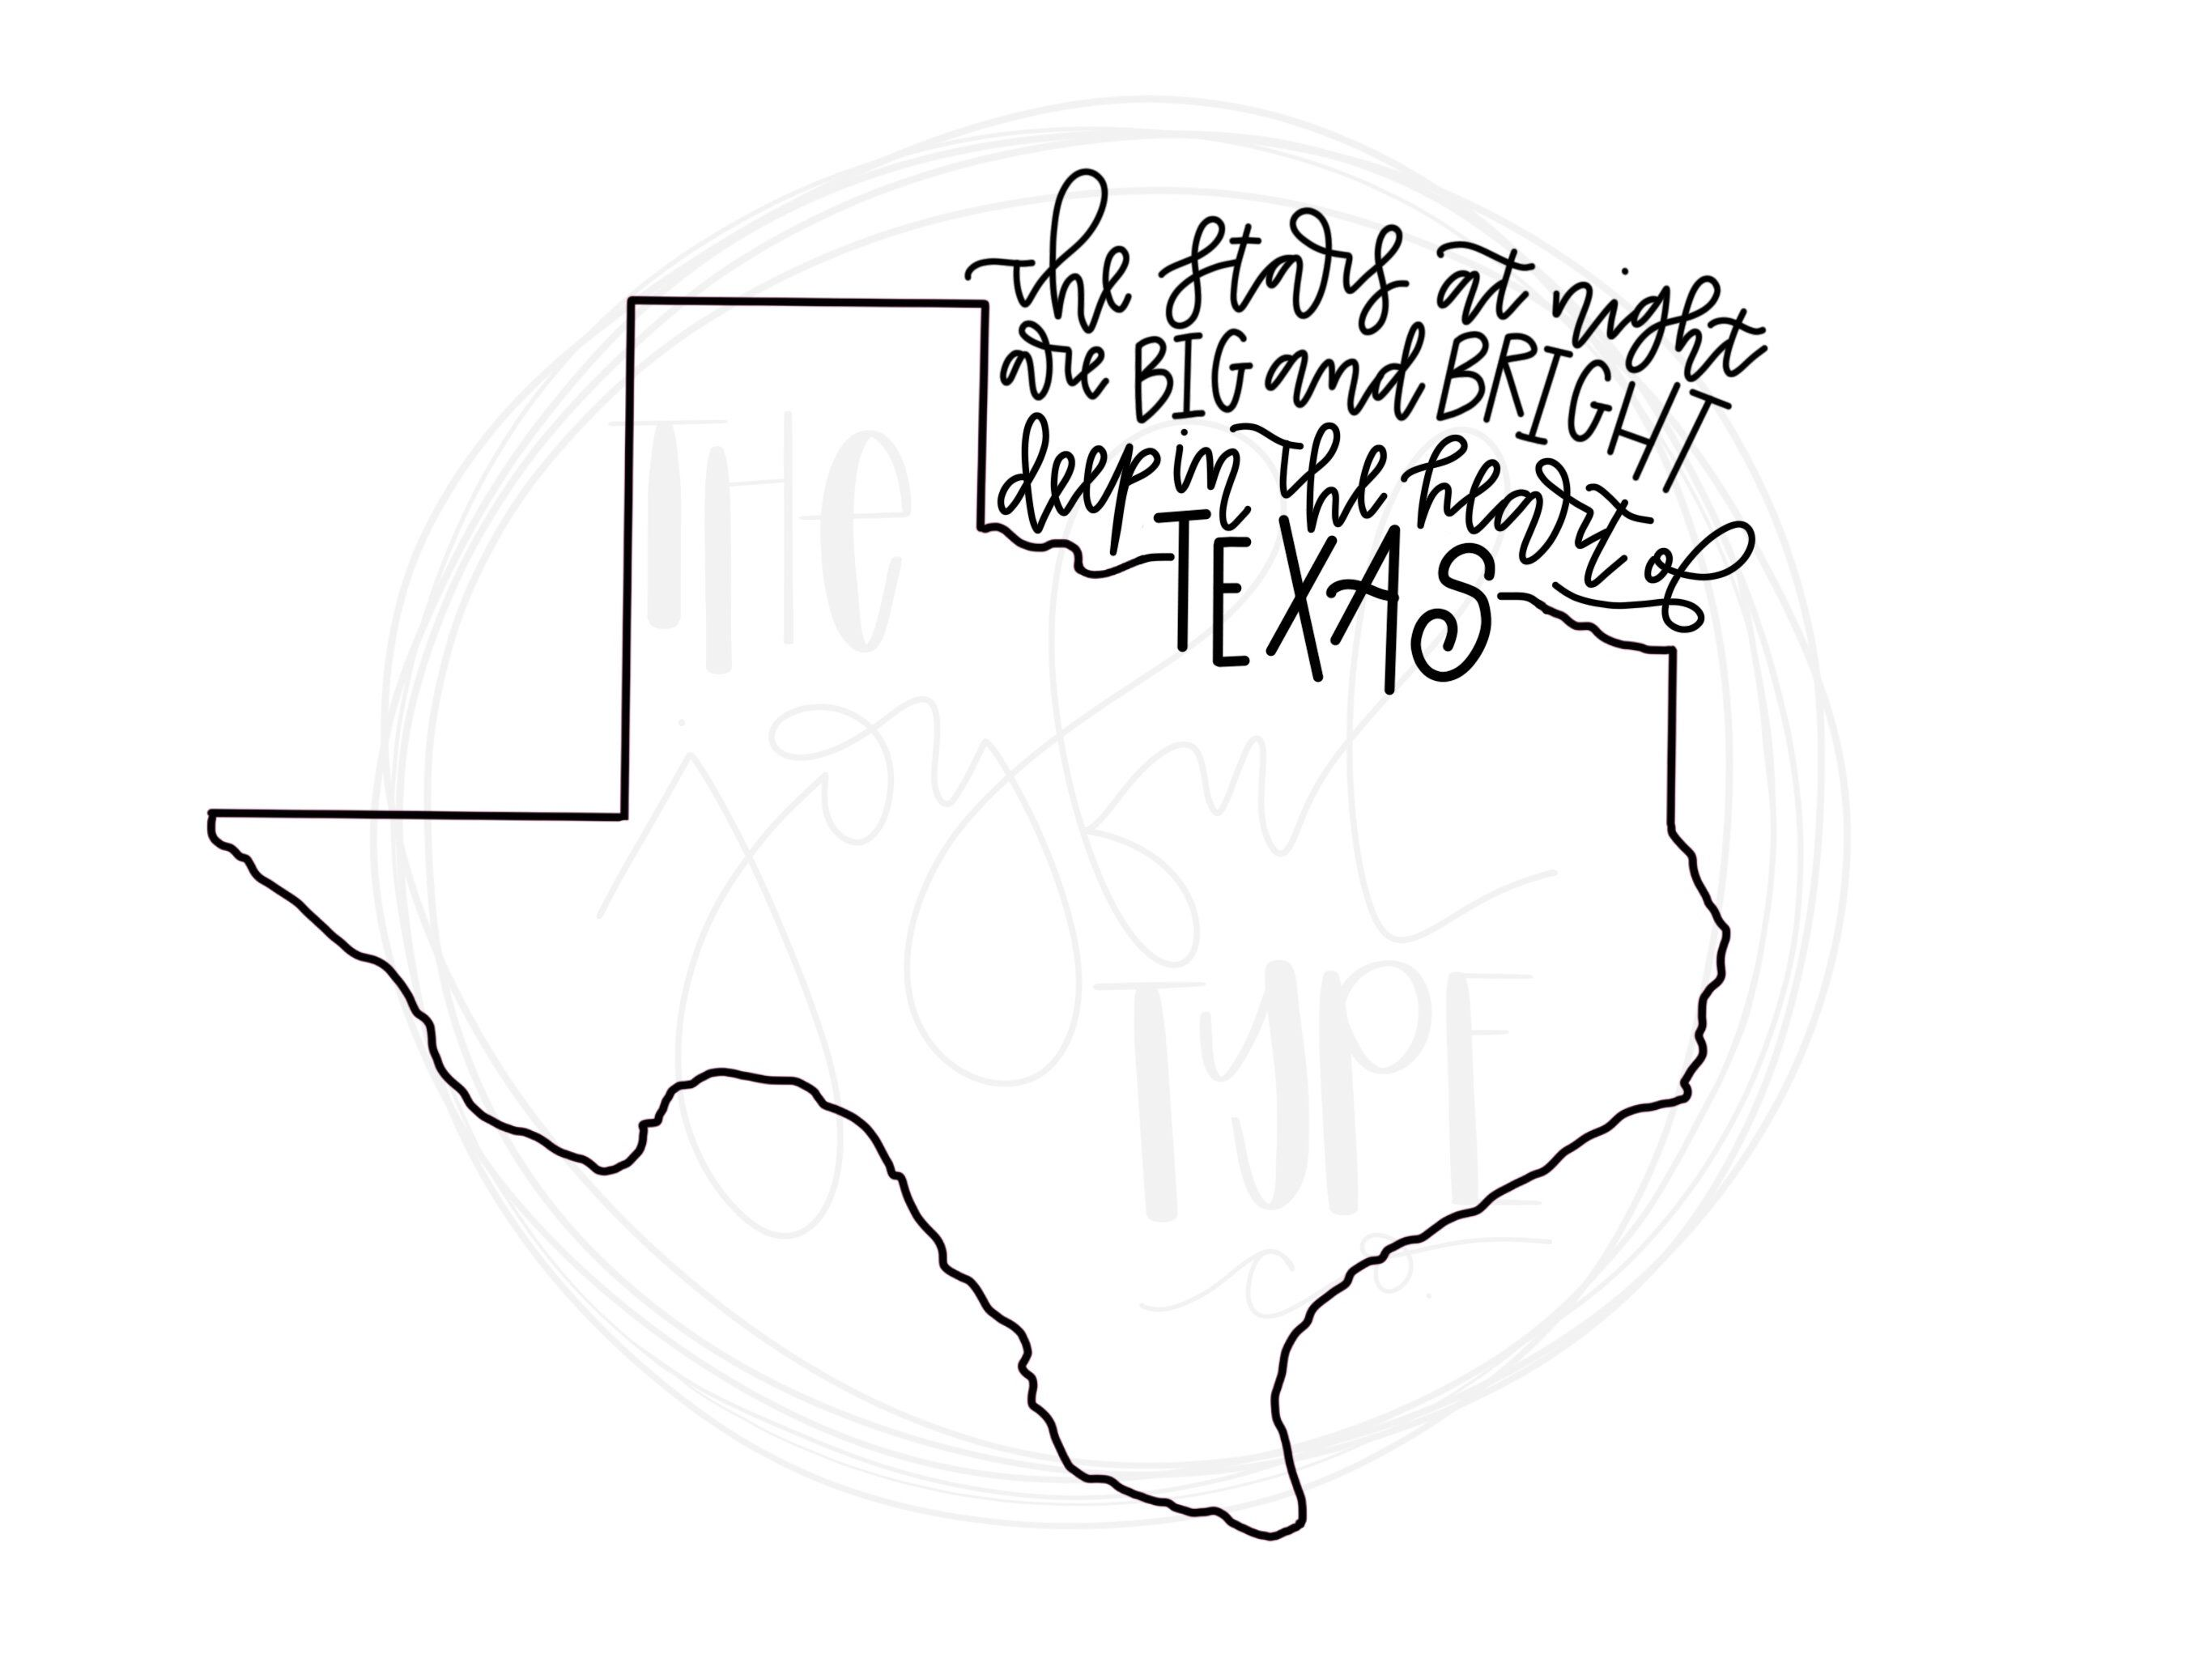 Heart of texas clipart banner royalty free stock Pin by Hillary Pettit on The Joyful Type Co | Silhouette ... banner royalty free stock